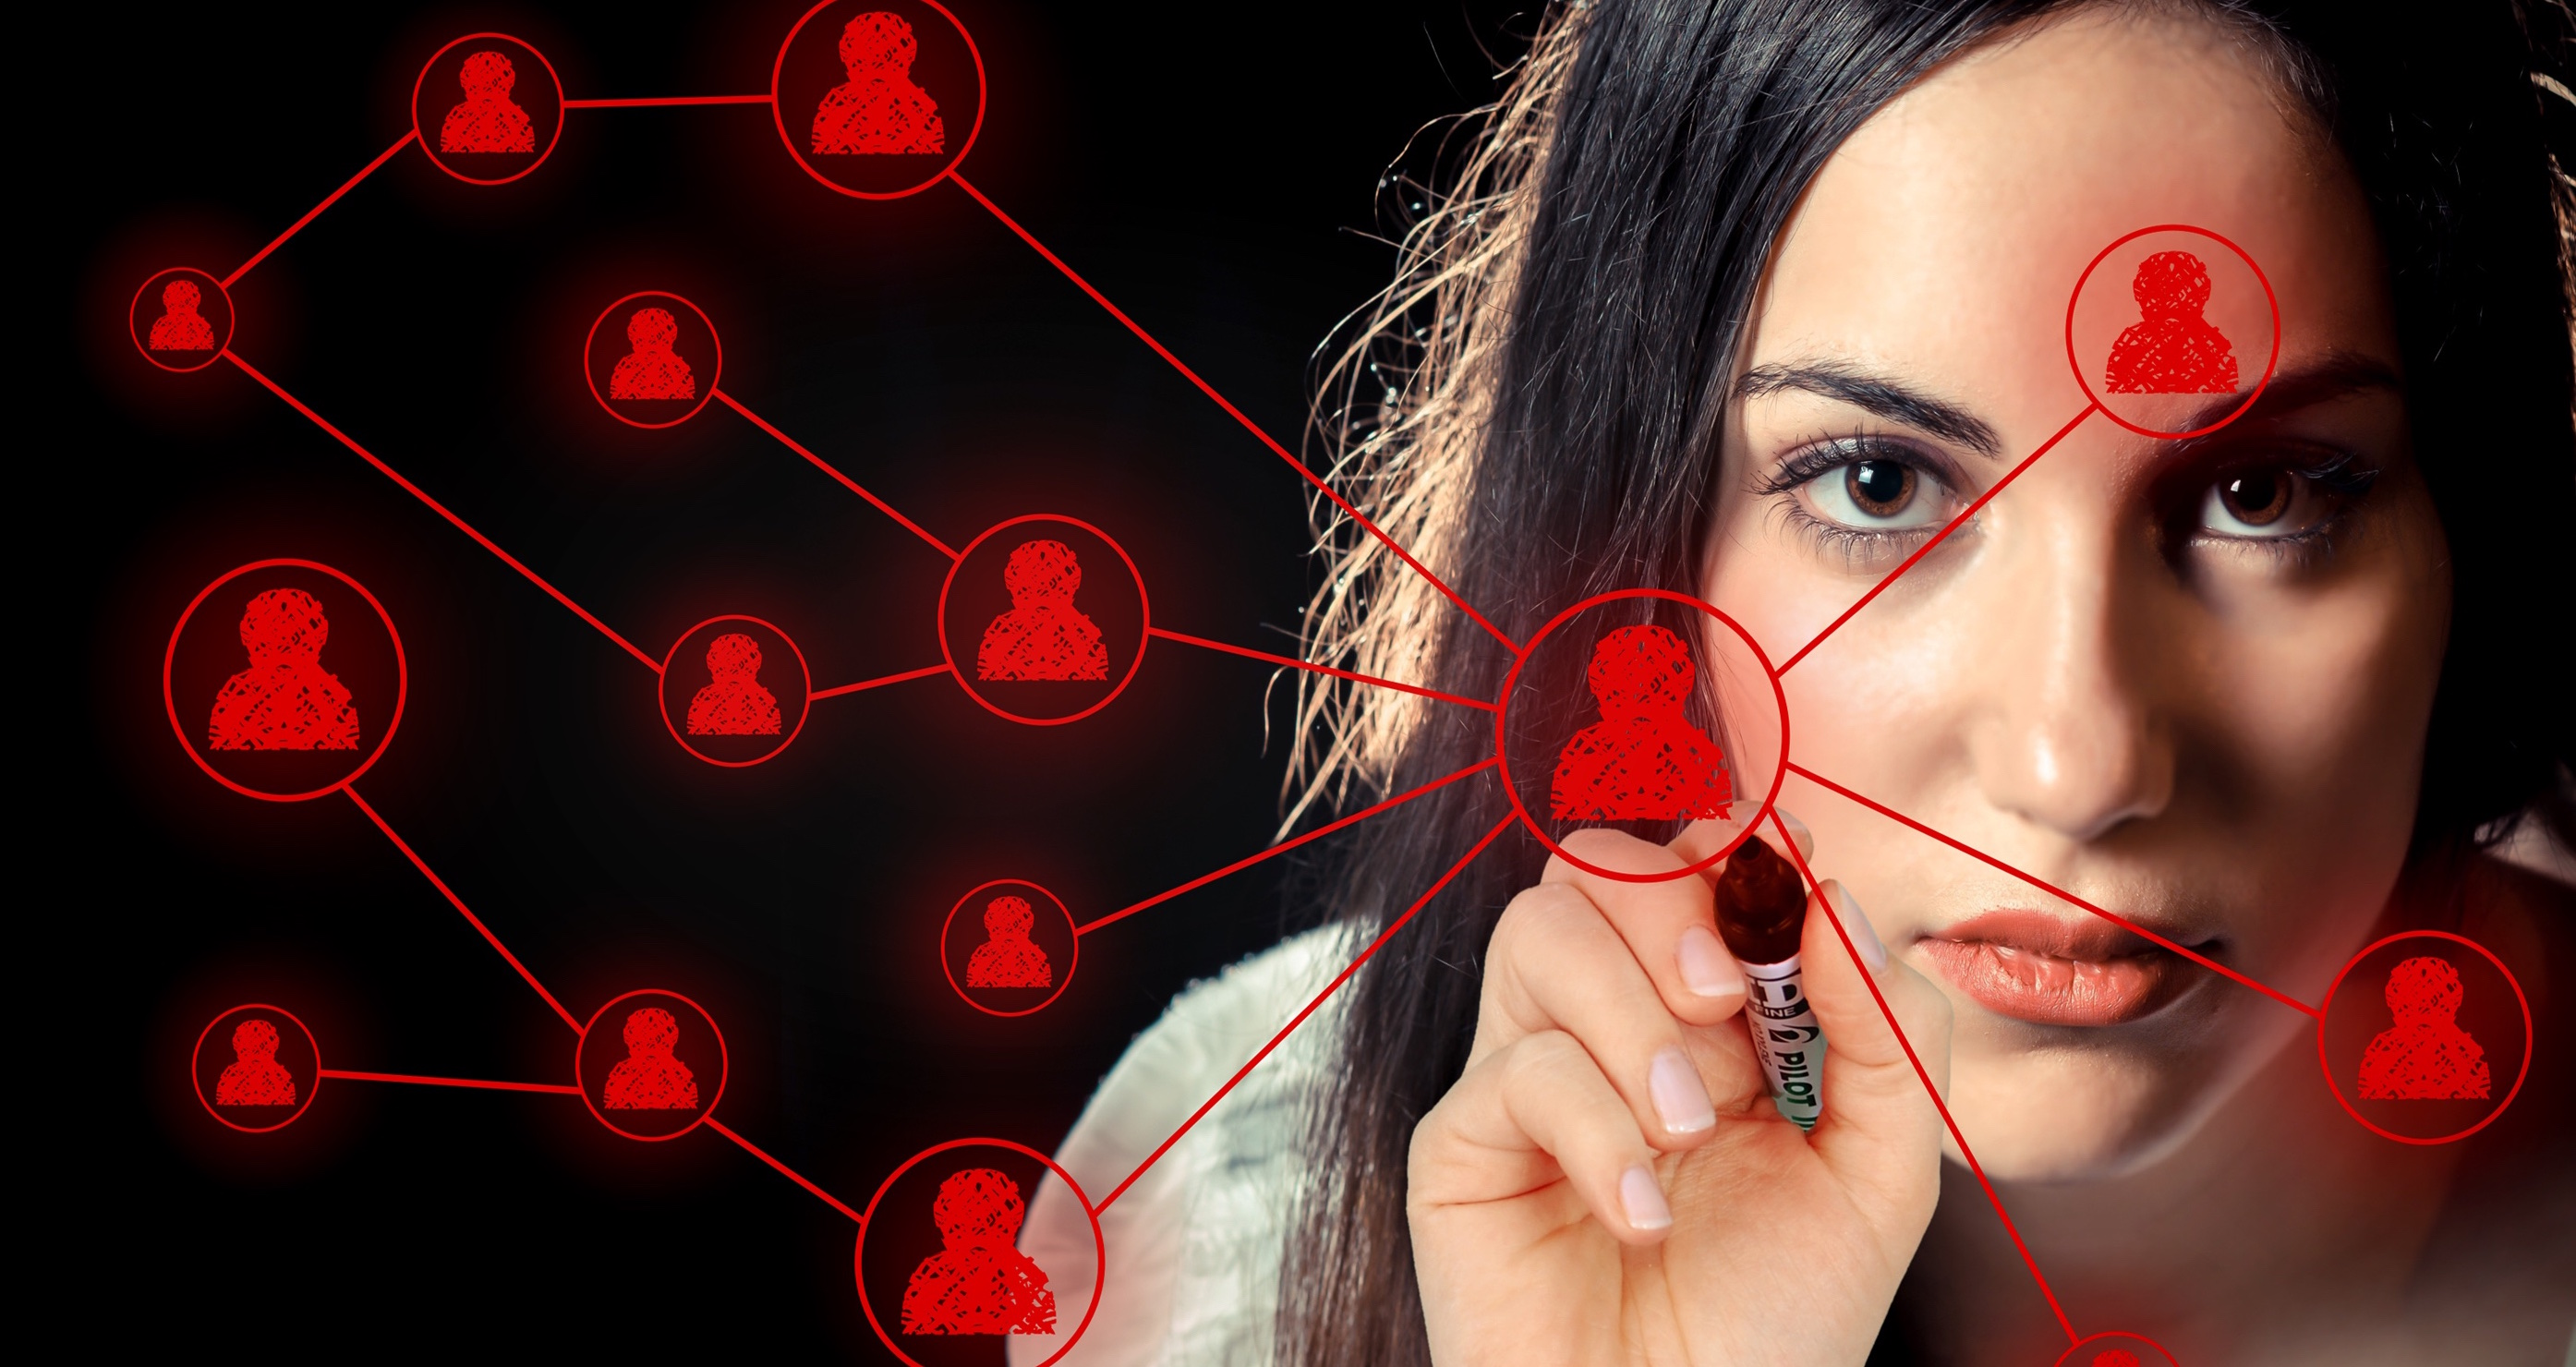 Perfect your online and offline personal brands